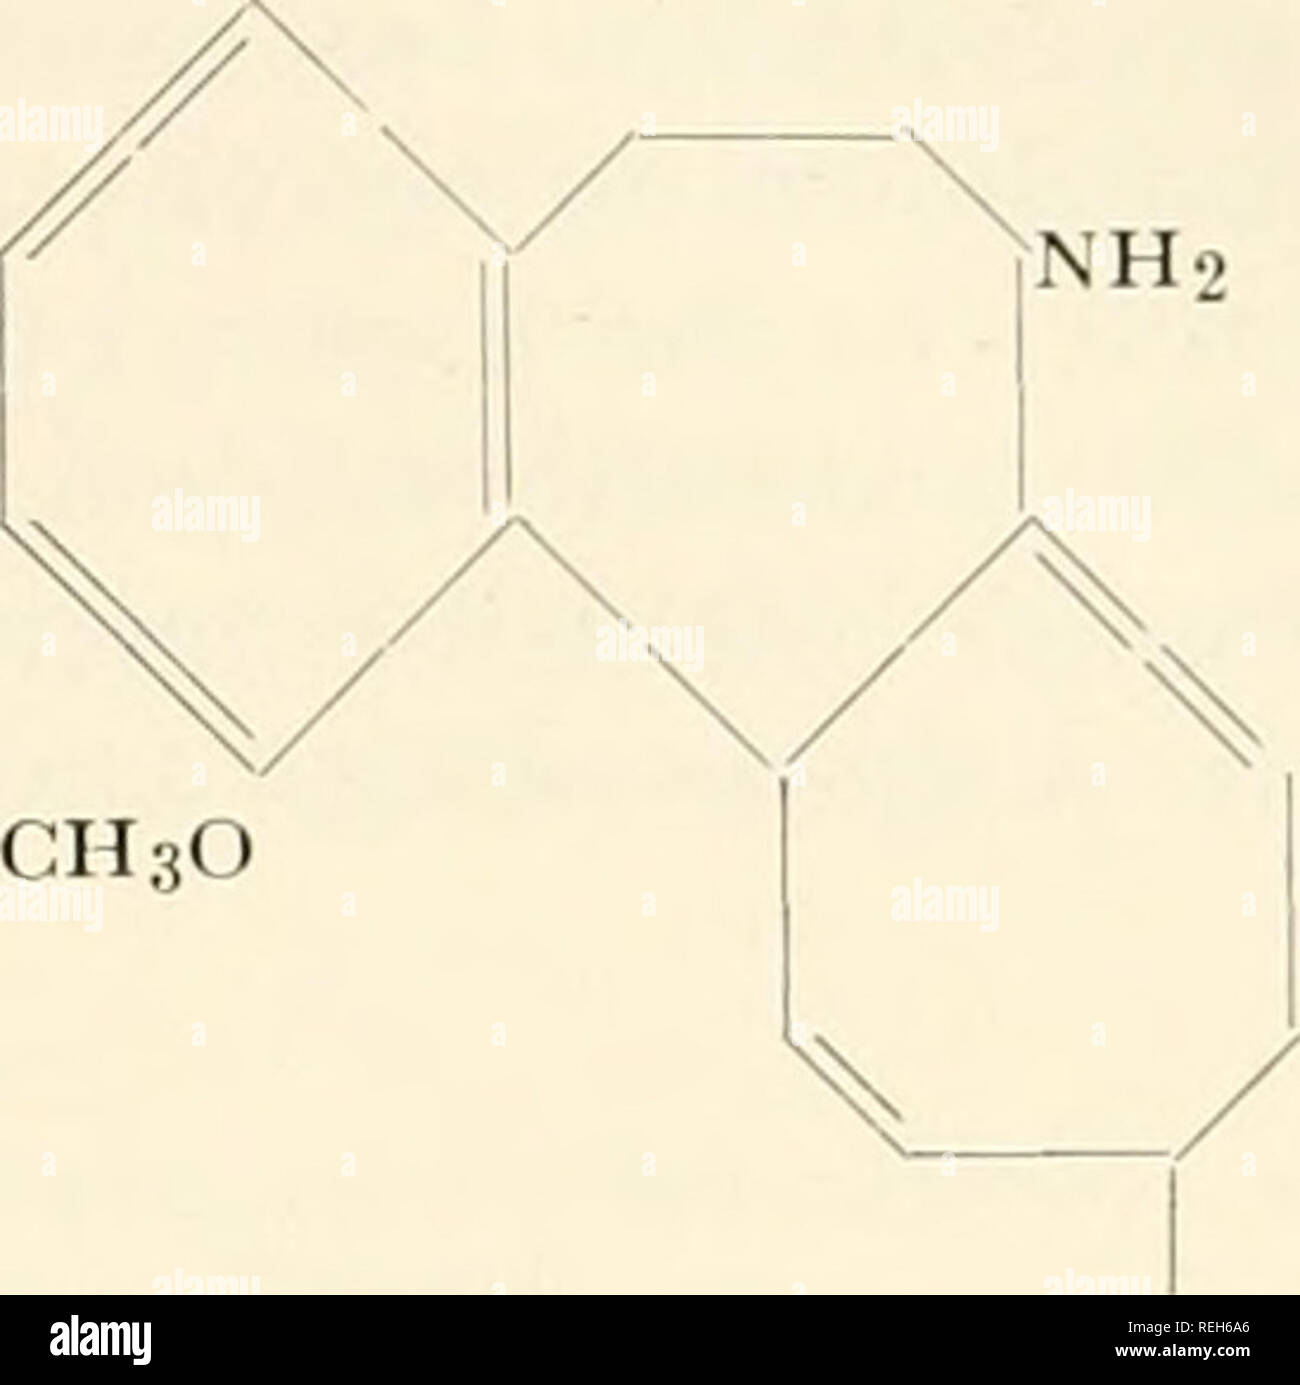 """. Colchicine in agriculture, medicine, biology, and chemistry. Colchicine; Colchicine. NH.C0CH3 CH30 CH30. CH30 0CH3 (VIII) (IX) = 0 0CH3 methylcolchicinic iiictliyl cllier has been demonstrated to be one of the most effective derivatives in arresting mitoses in the stomach epithelium of mice.""""- ^-- -^^ Substitutions in ring C are the most important, for they yield substances with a greater antimitotic activity than colchicine.""""^- '^^ These are derivatives of colchicamide (X). (This abbreviated spell- ing is to be preferred to colchicine amide or colchiceinamide, which are to be foun - Stock Image"""